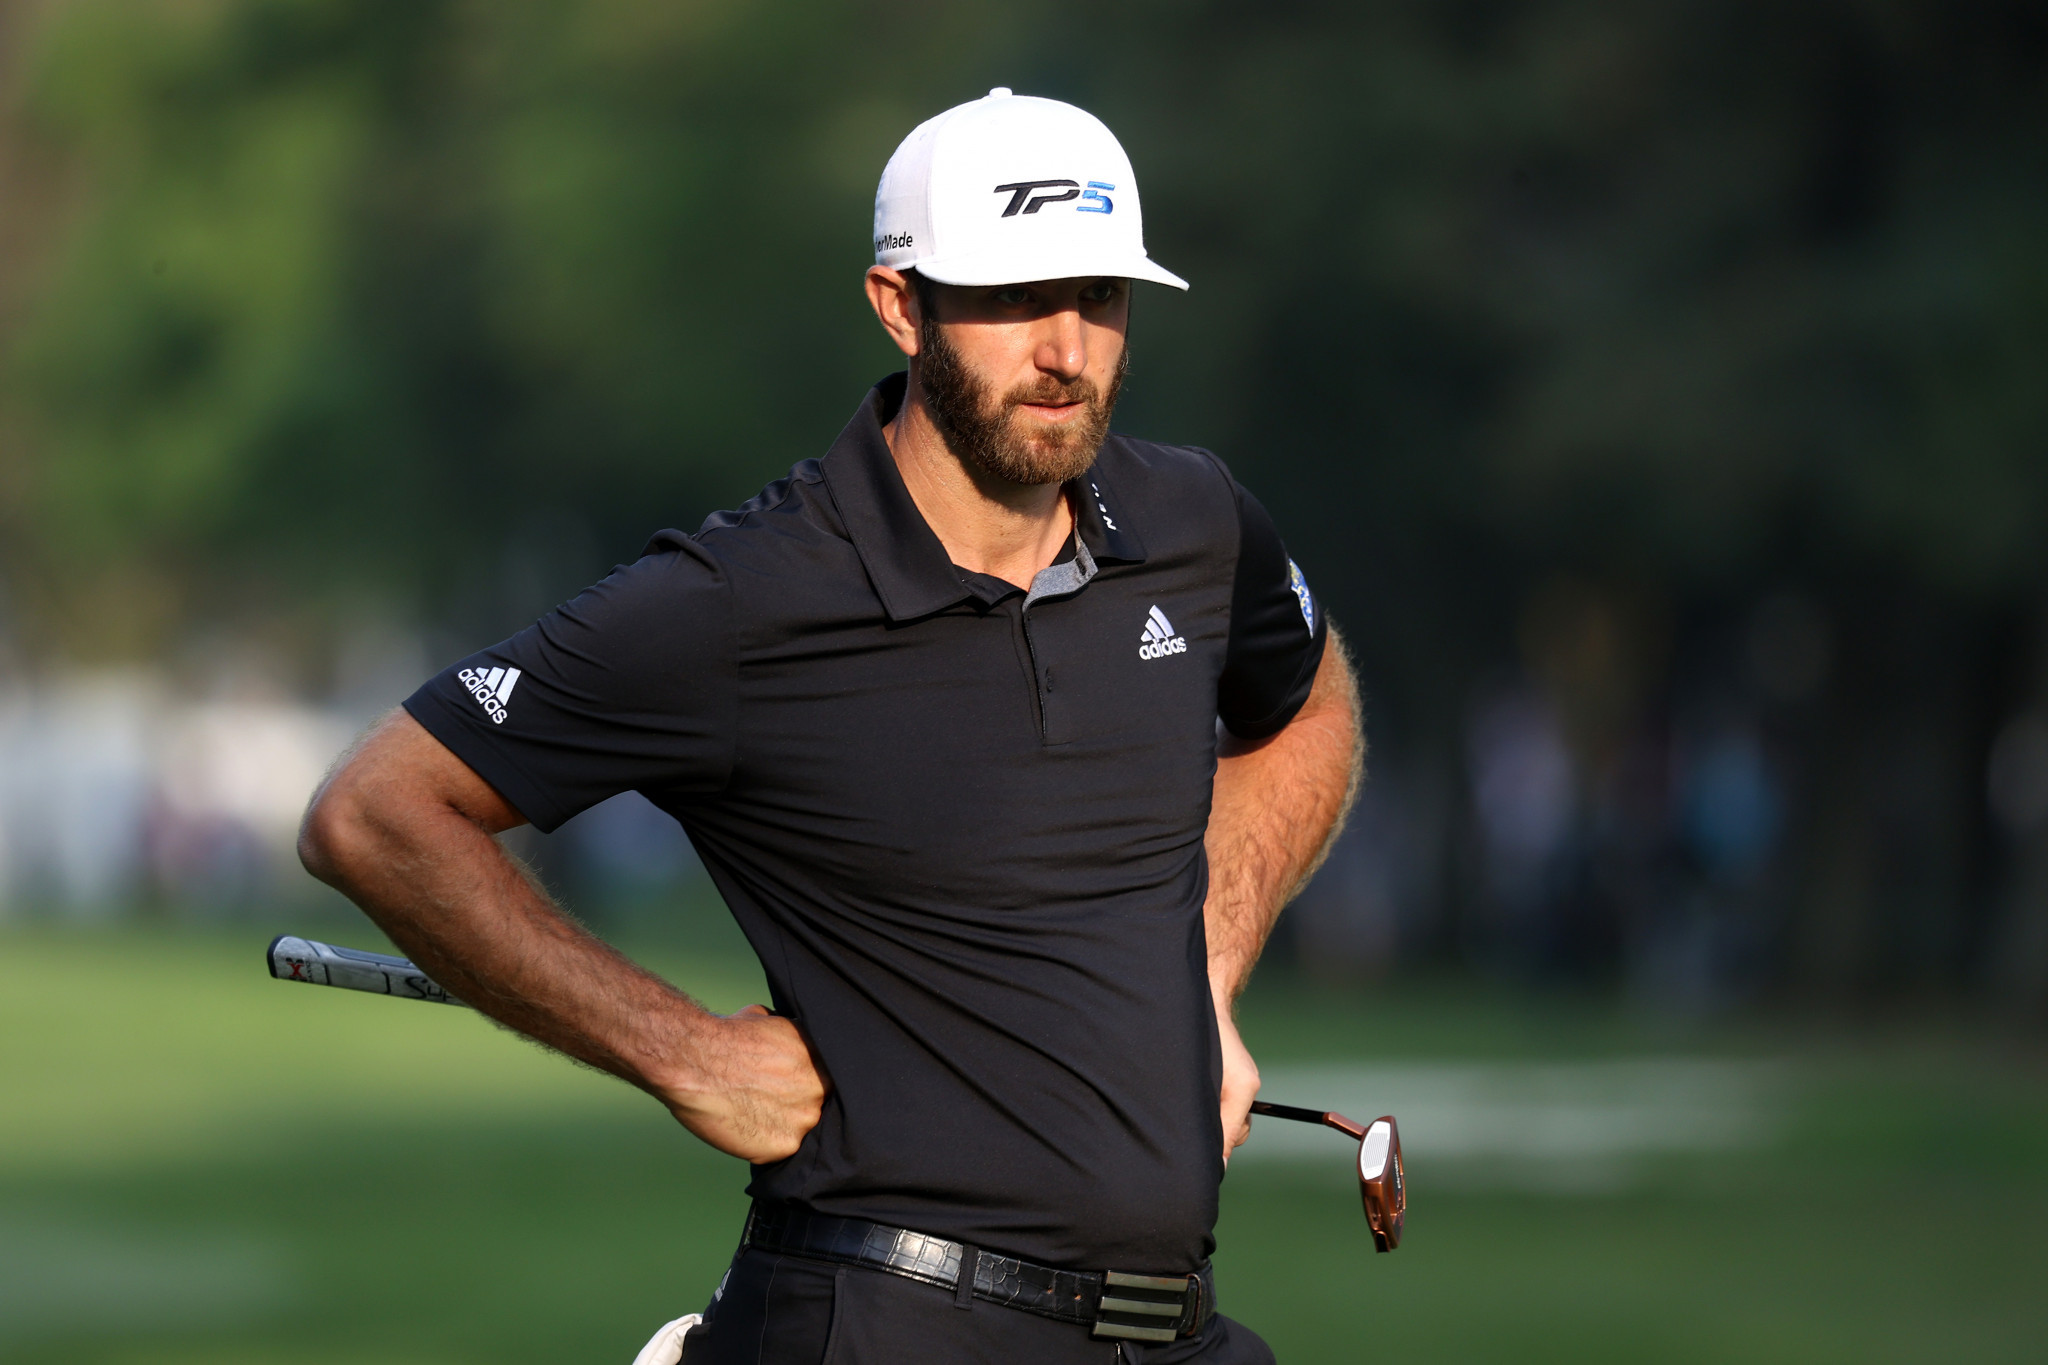 Dustin Johnson opts against participating in Tokyo 2020 golf tournament